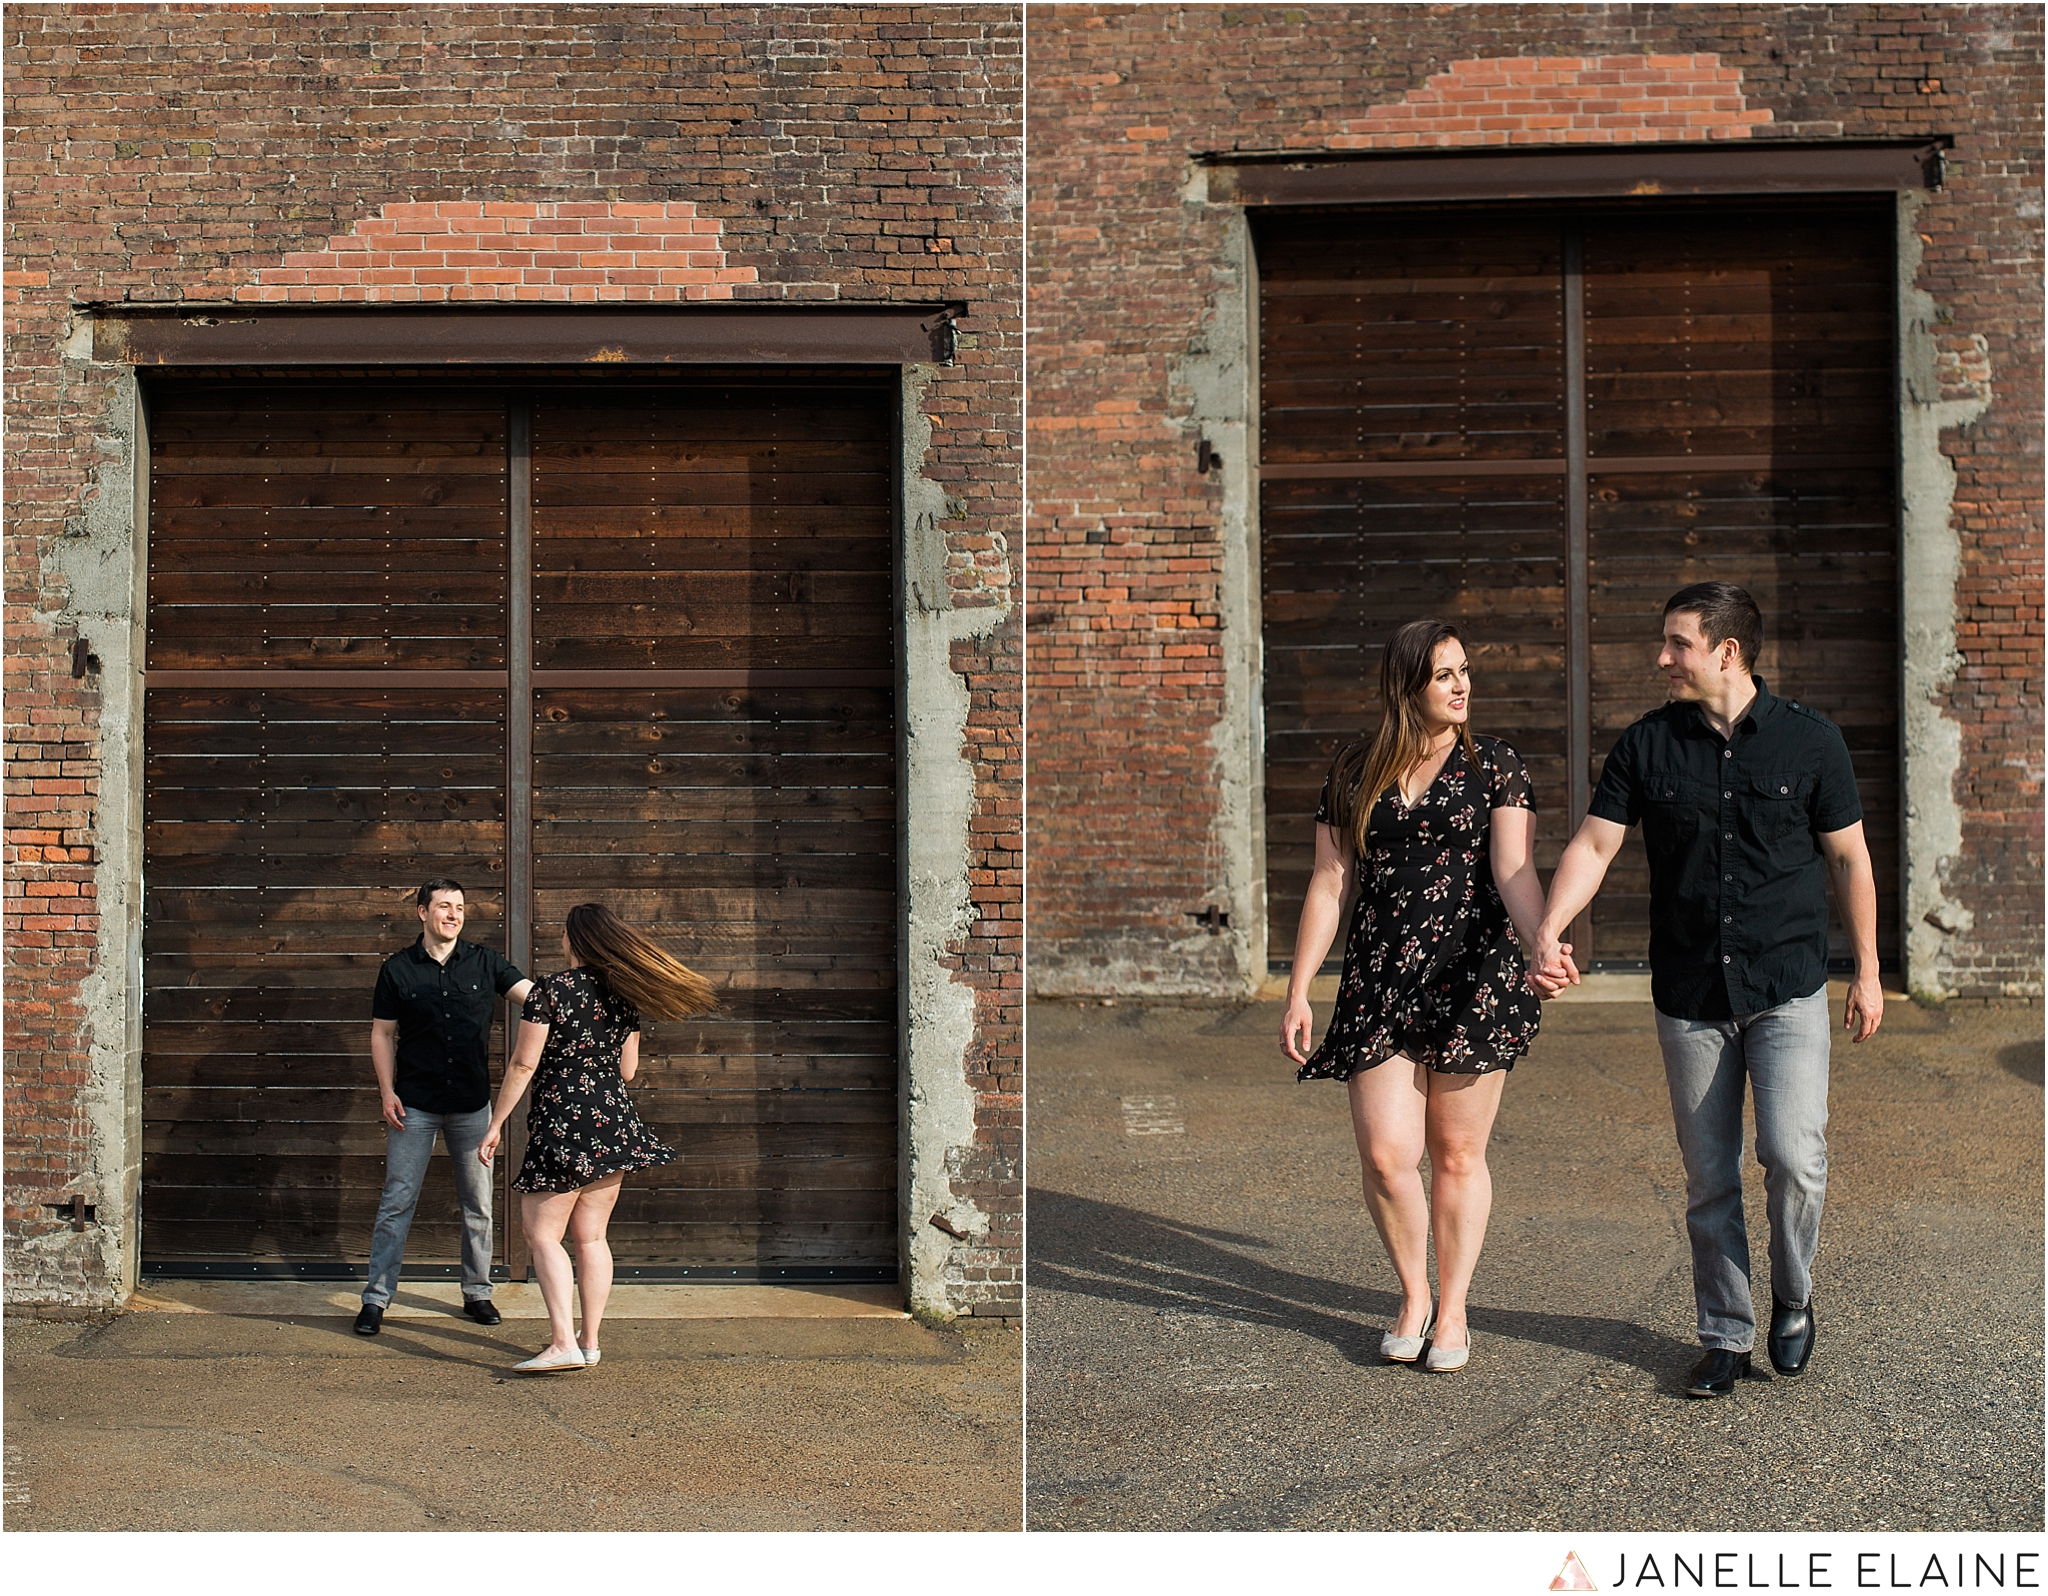 karen ethan-georgetown engagement photos-seattle-janelle elaine photography-103.jpg